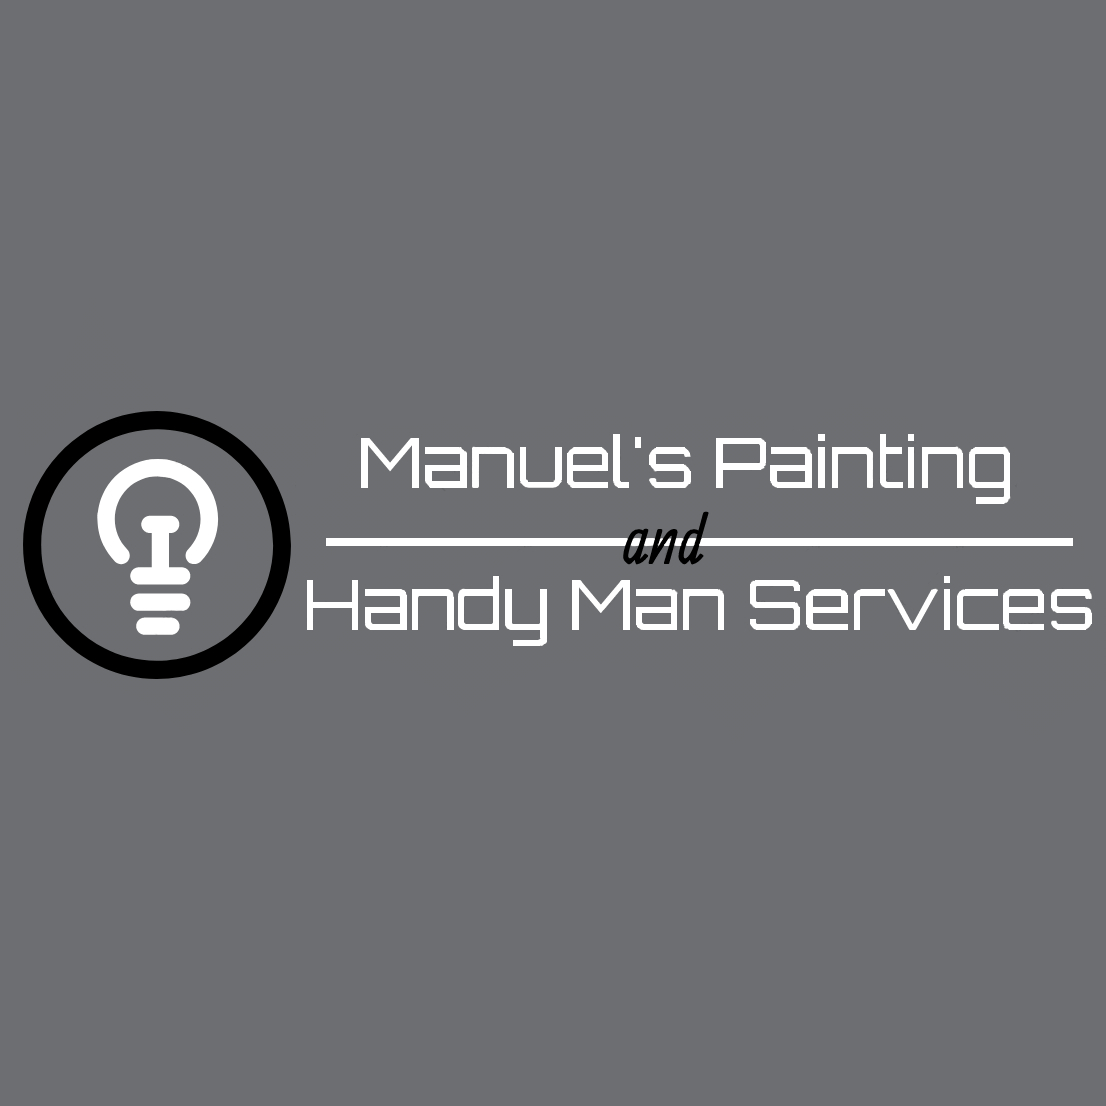 Manuel's Painting and Handy Man Services